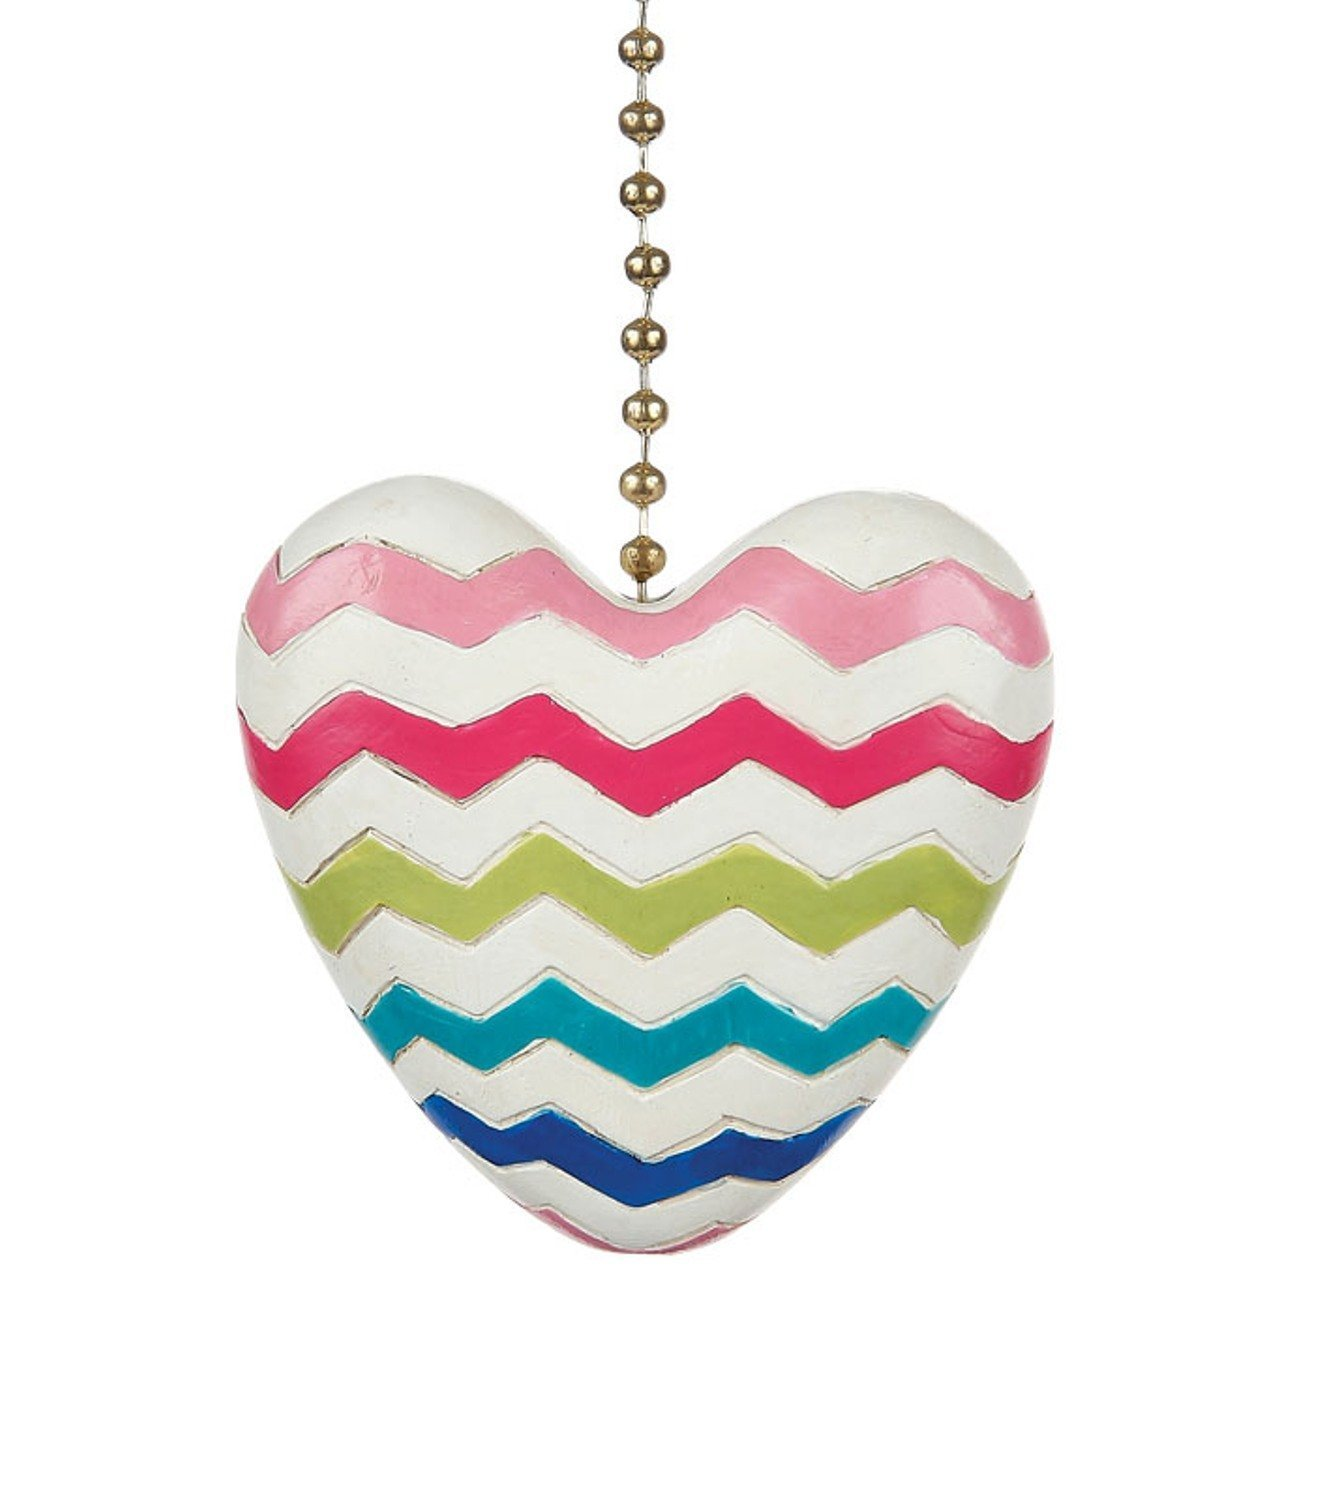 Clementine Designs Colorful Chevron Heart Decorative Ceiling Fan Light Dimensional Pull